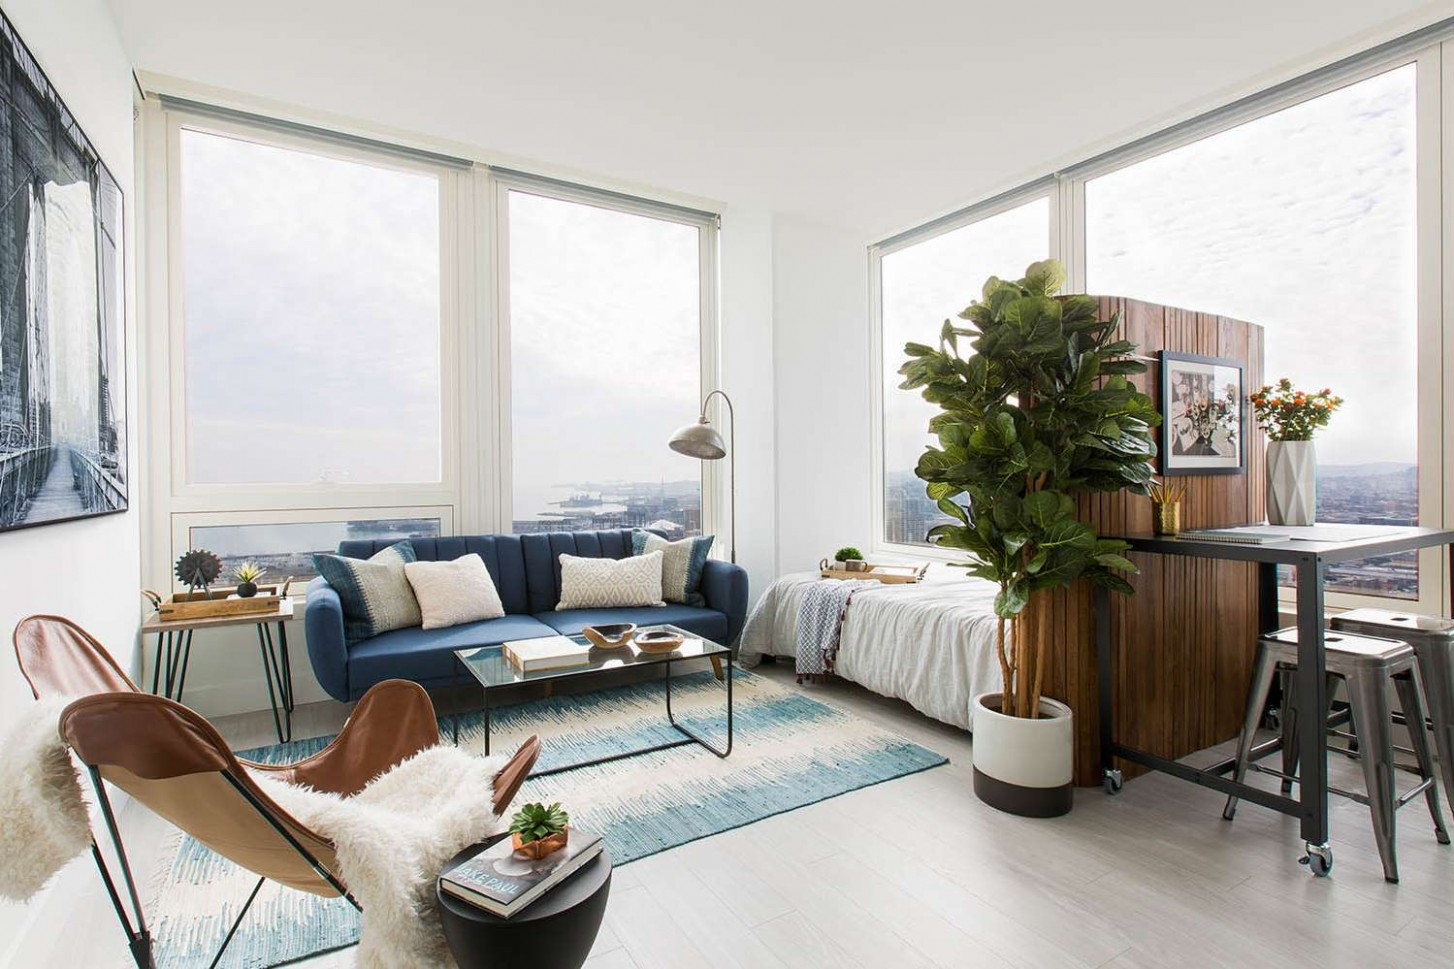 8 Perfect Studio Apartment Layouts That Work - One Bedroom Apartment Decorating Ideas With Photos